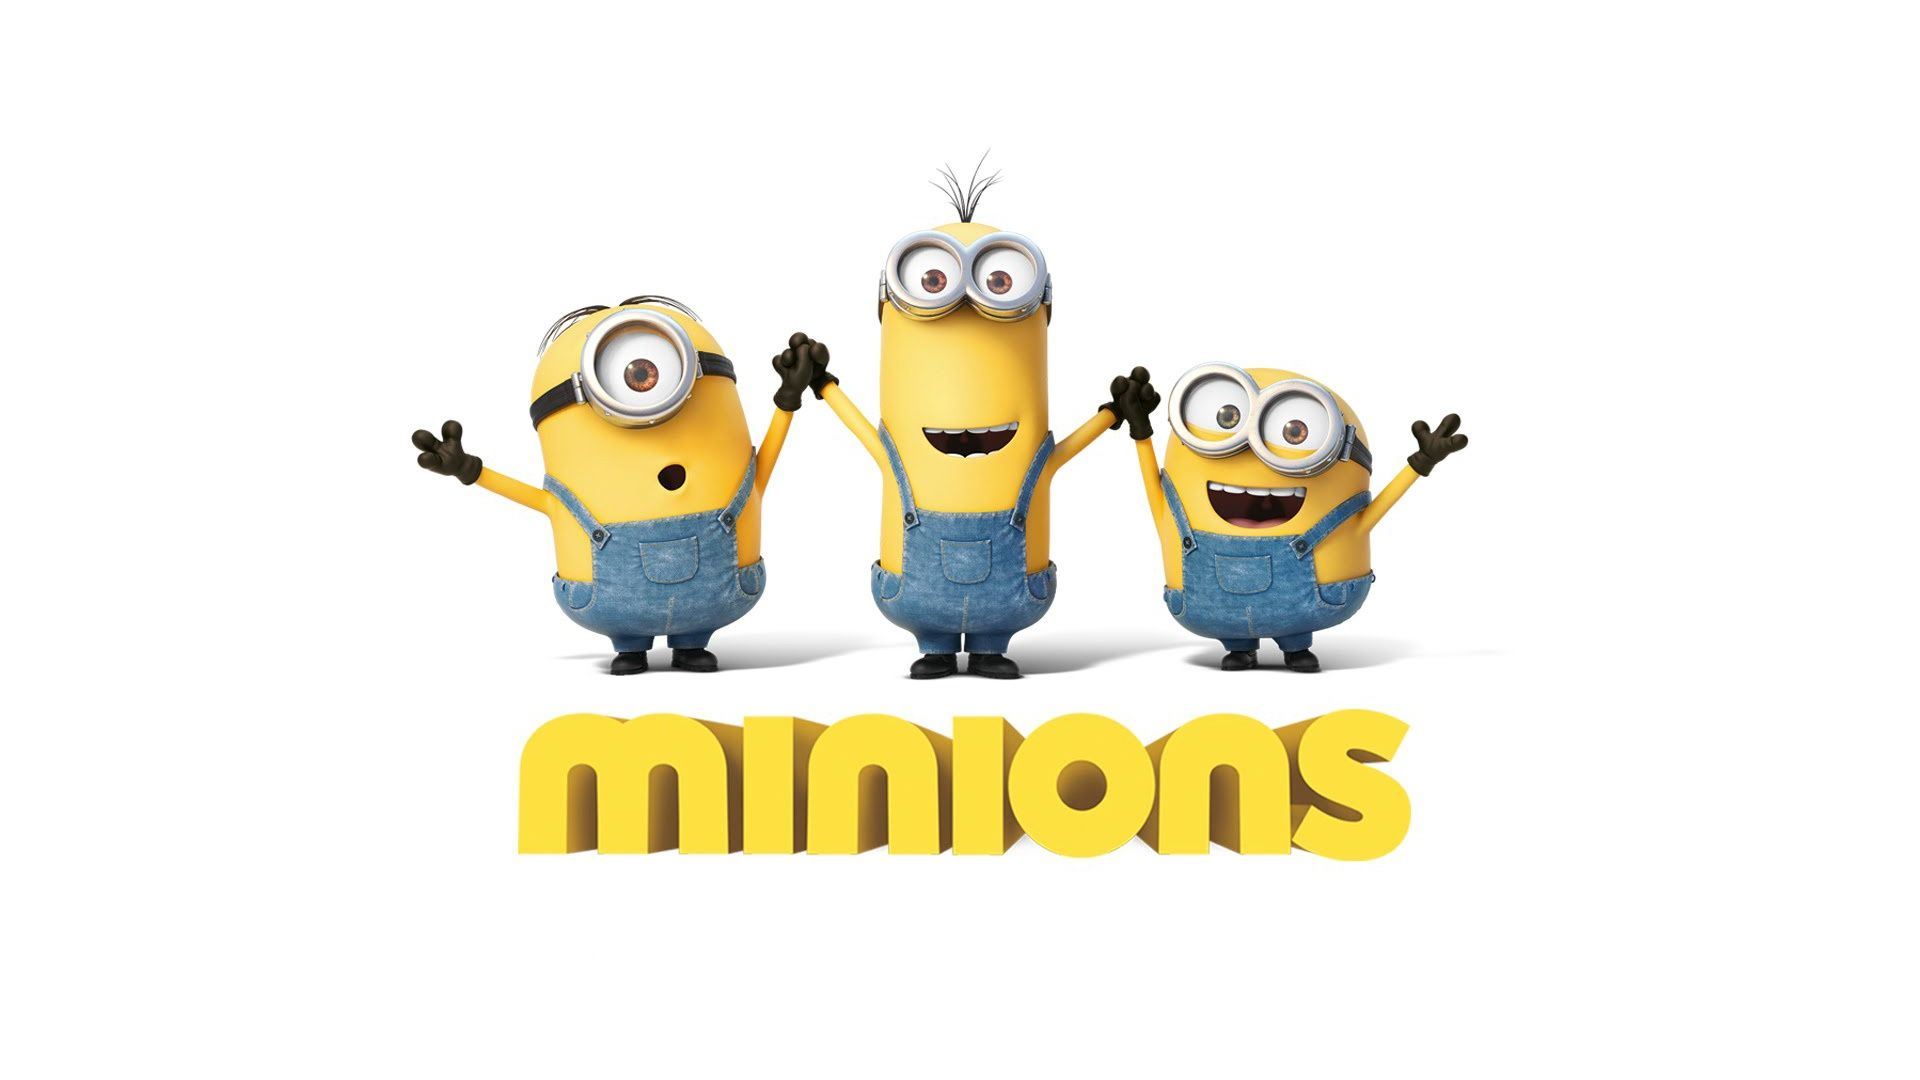 best ideas about Minion wallpaper on Pinterest Cute